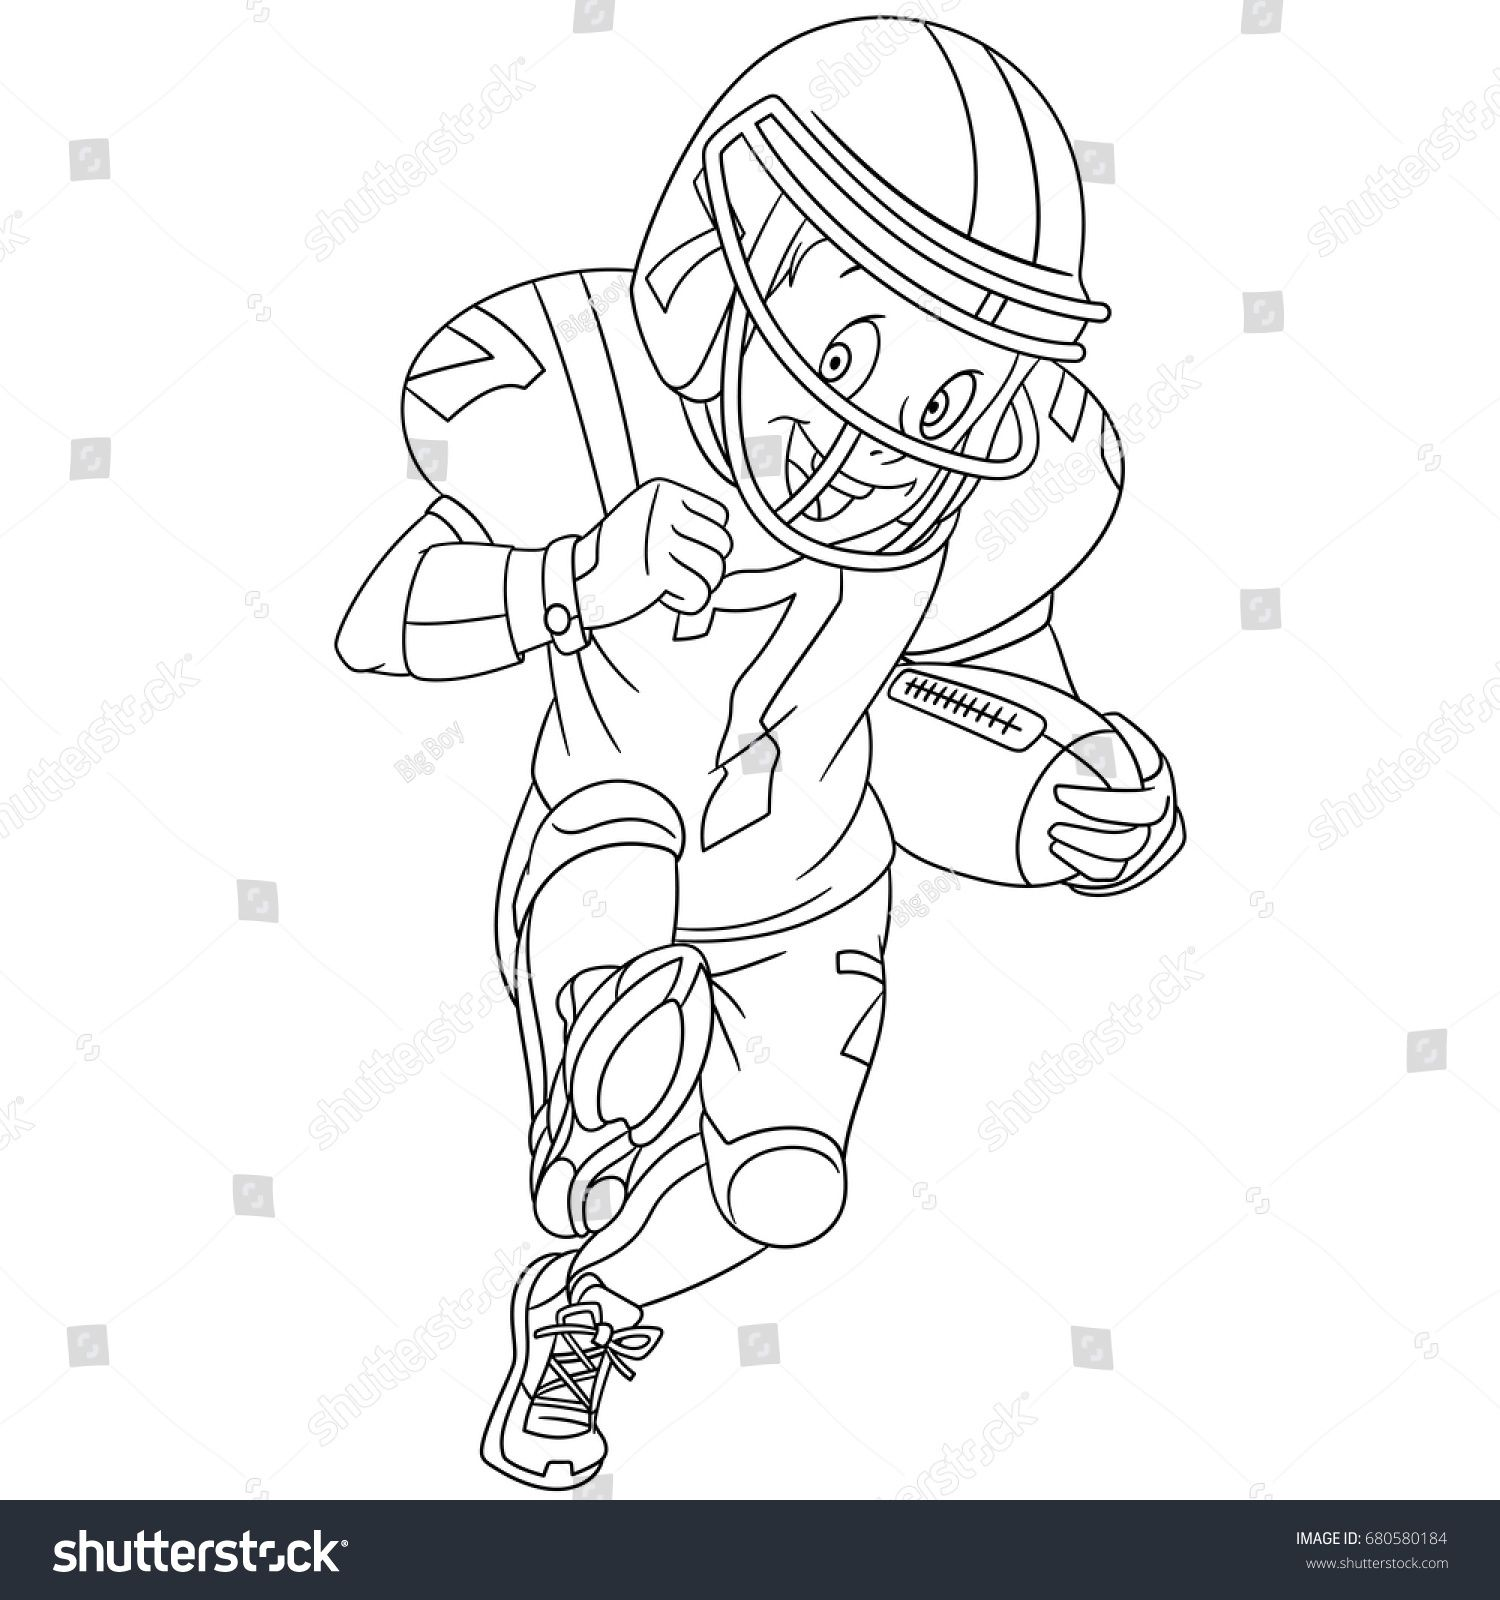 Coloring page of boy playing rugby american football Colouring